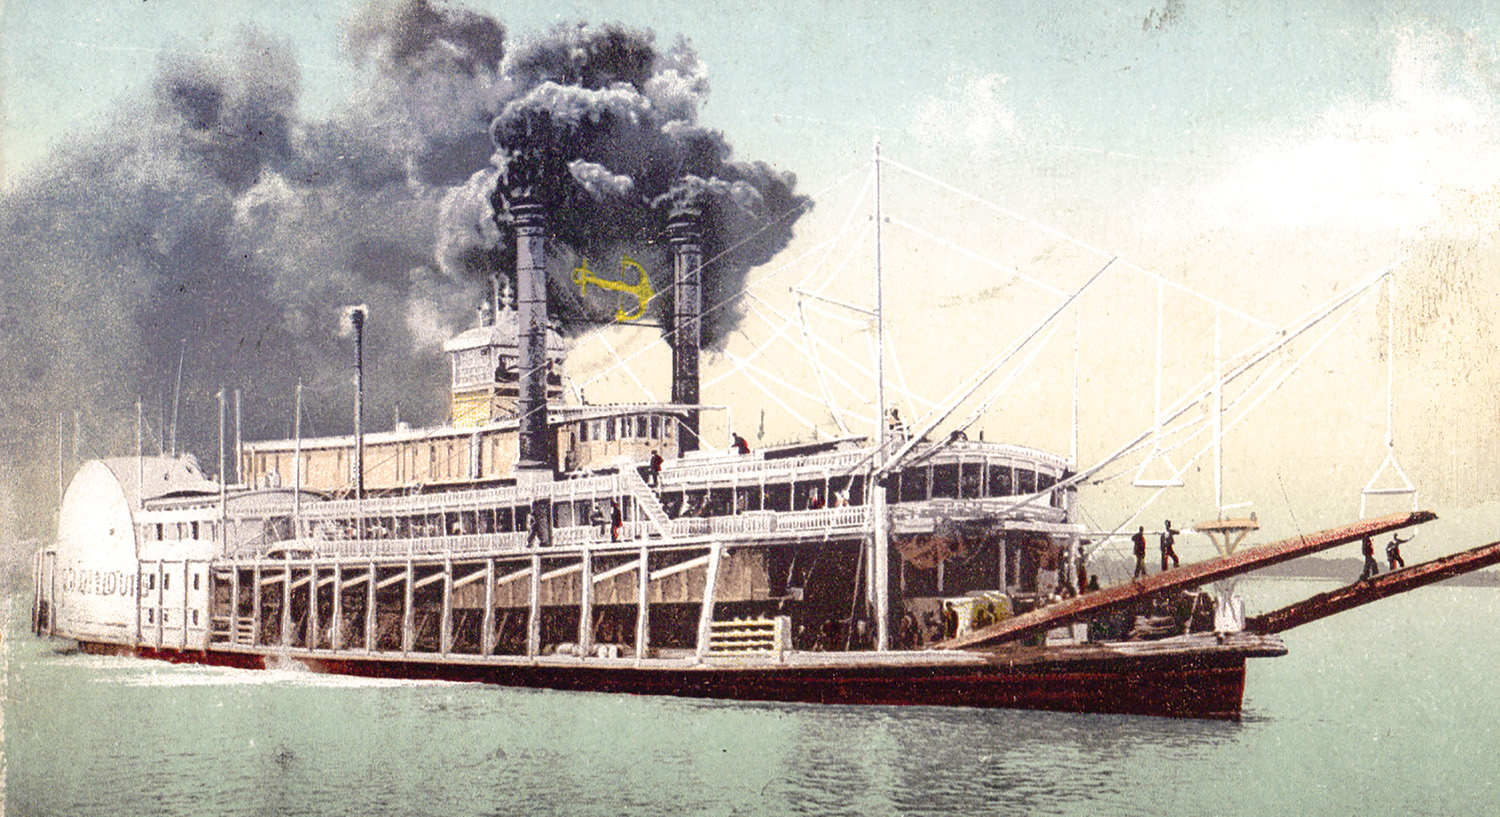 A vintage postcard view of the famous Anchor Line steamboat City of St. Louis.